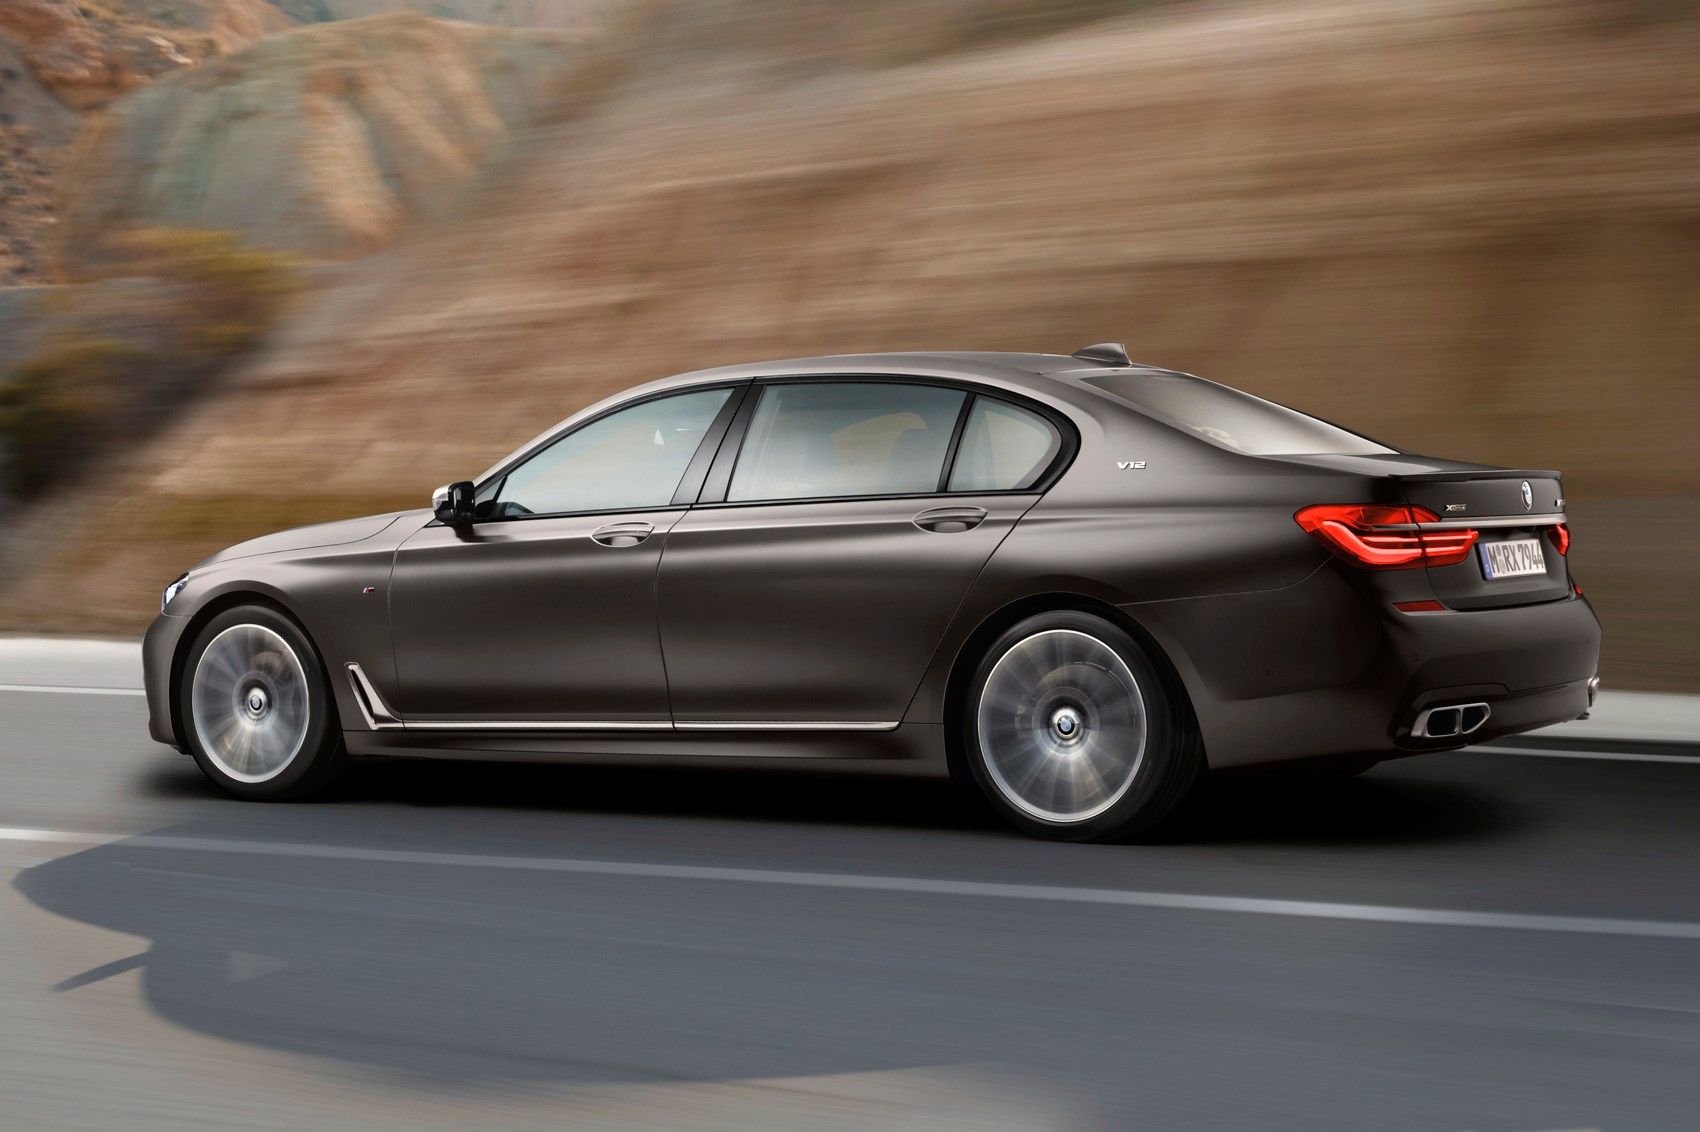 Things that like to go Mmm now include the BMW M760Li xDrive by CAR